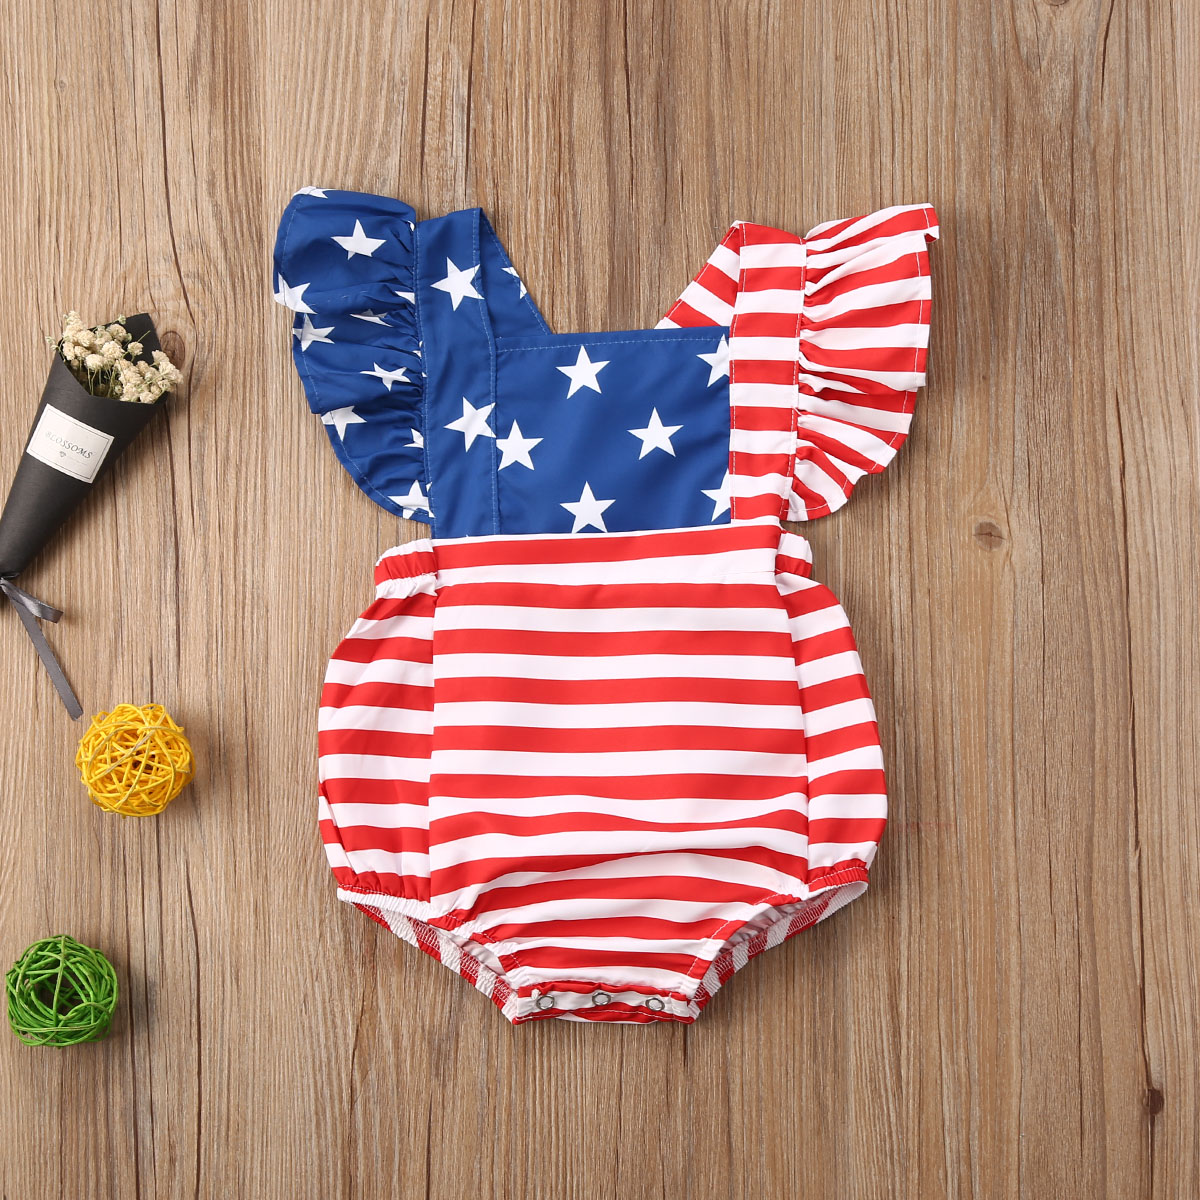 Pudcoco Newborn Baby Boy Girl Clothes Summer Star Striped Print Sleeveless Ruffle Romper Jumpsuit One-Piece Outfit Sunsuit